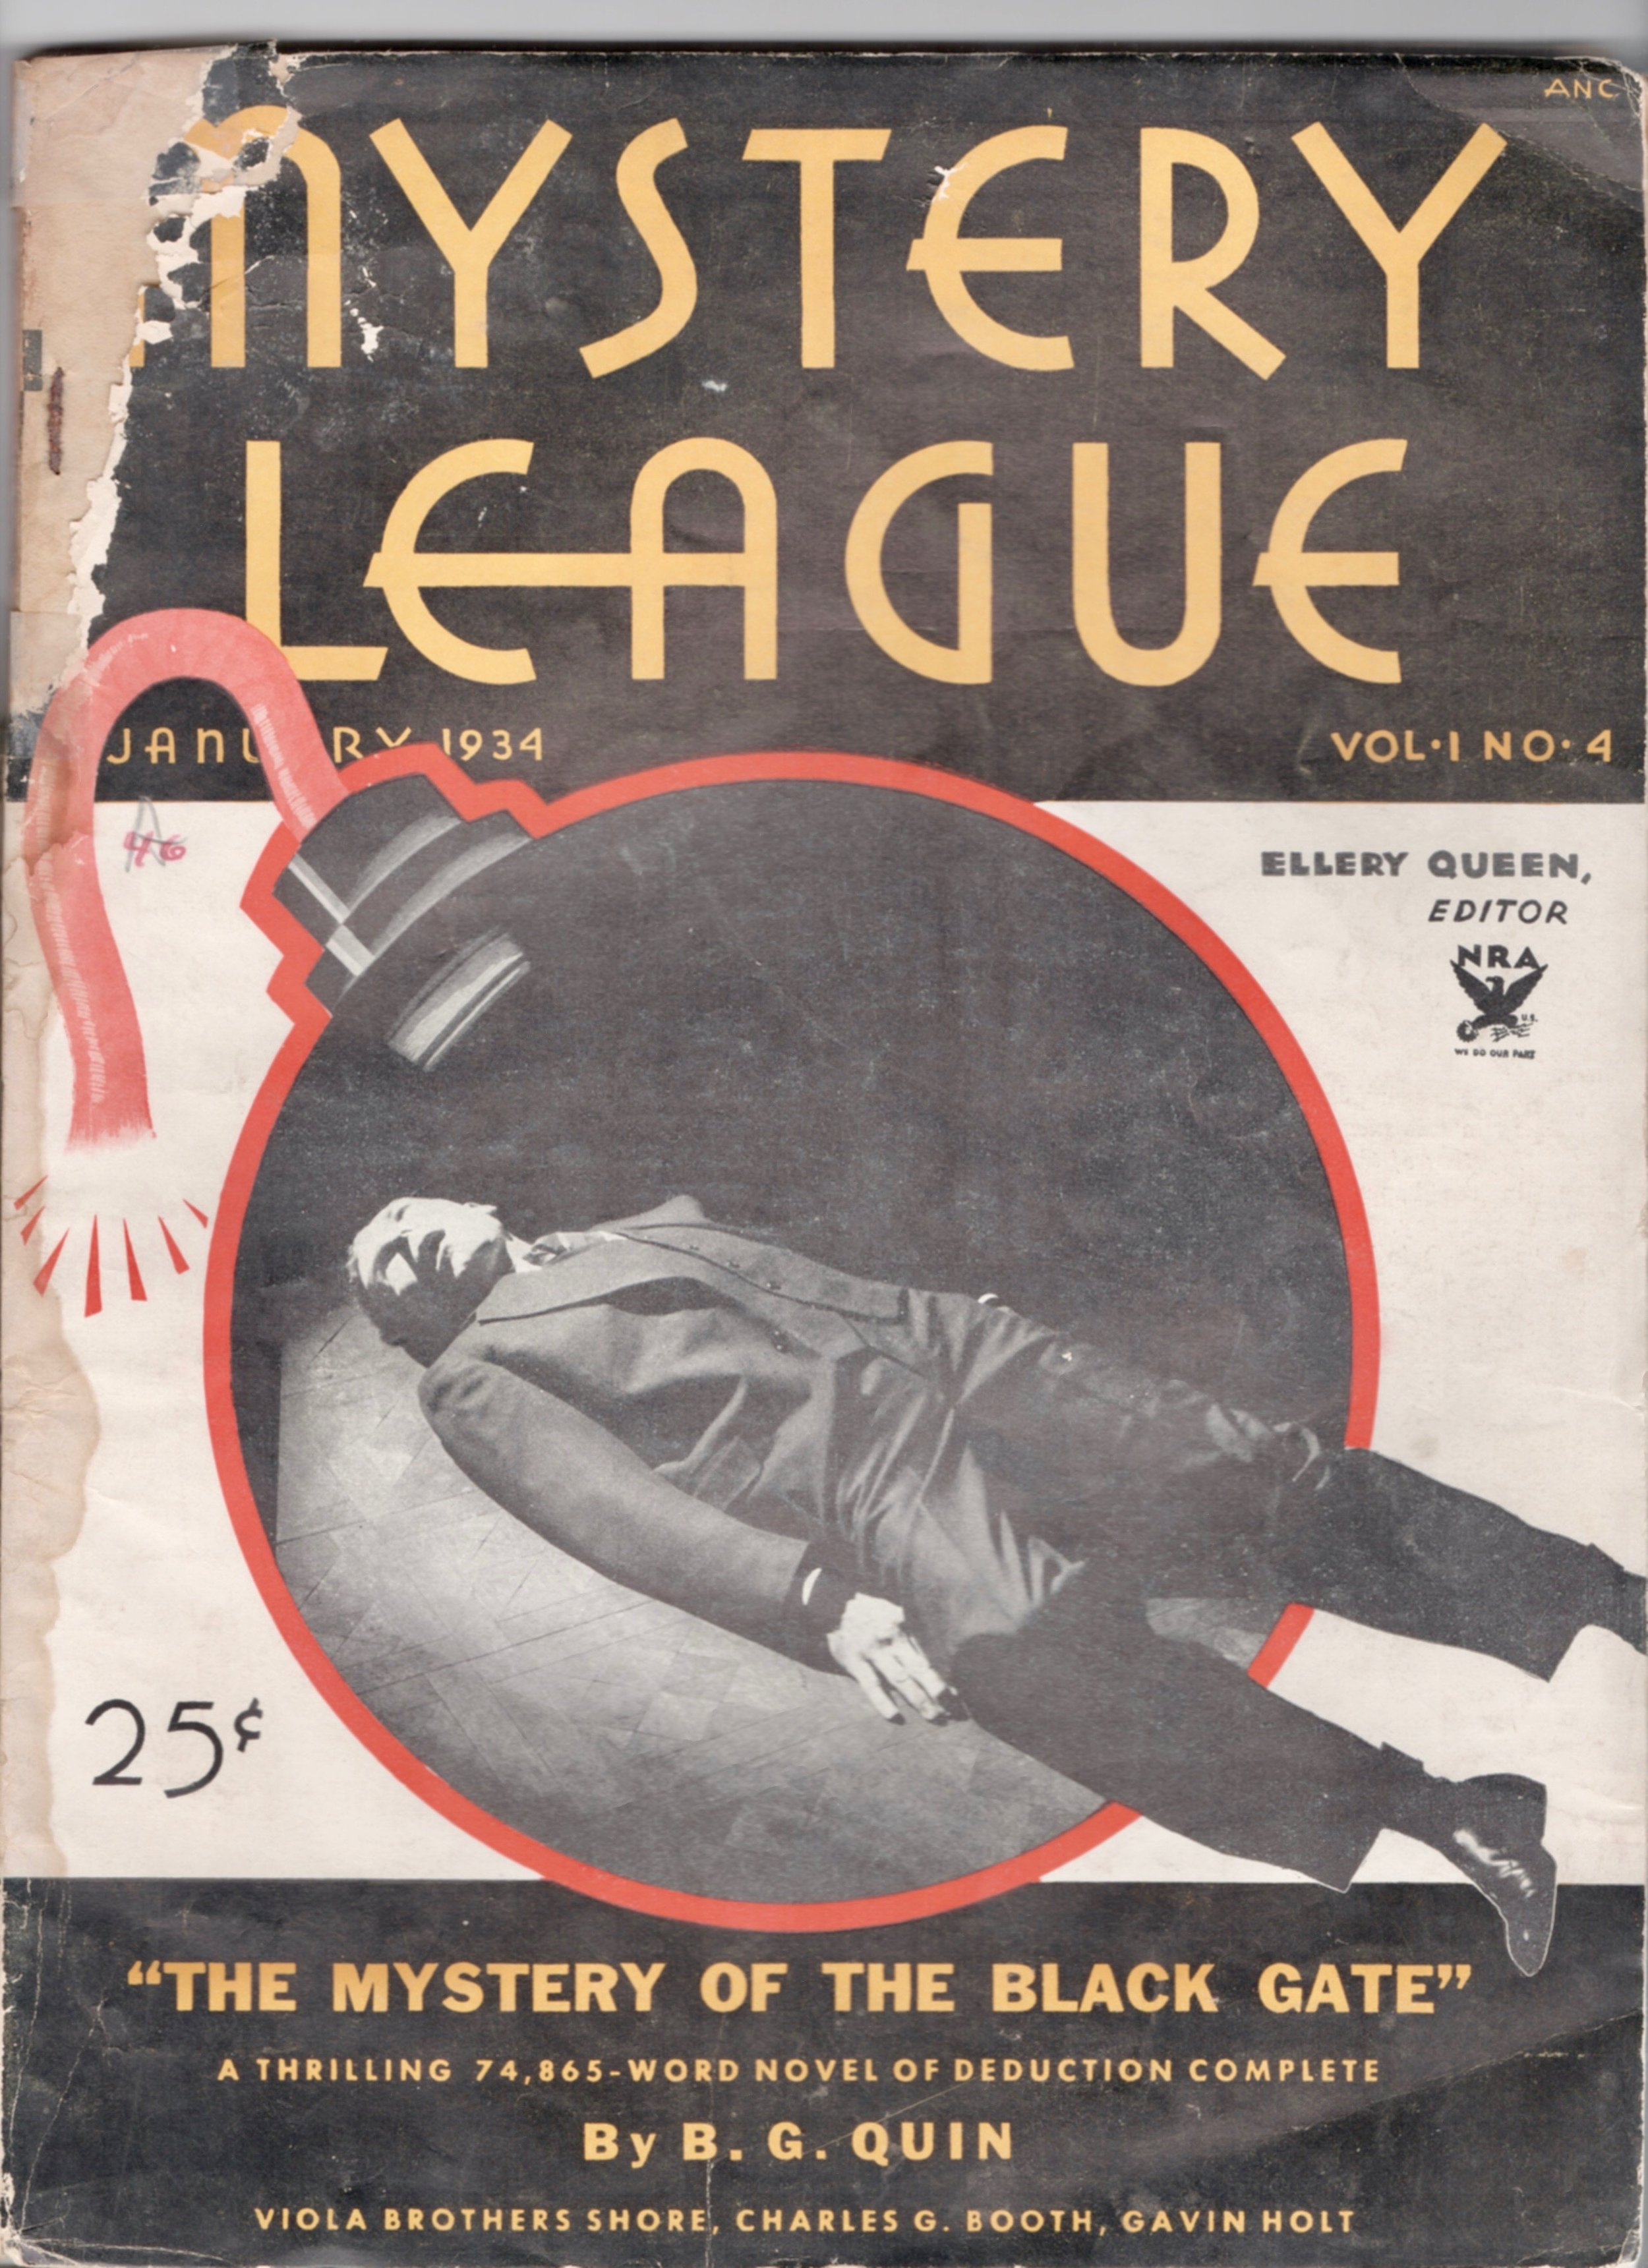 I've been hunting a copy of Mystery League for a long time. The only one I've been able to find (and afford) is this damaged copy. It's not the best, but you get the idea.